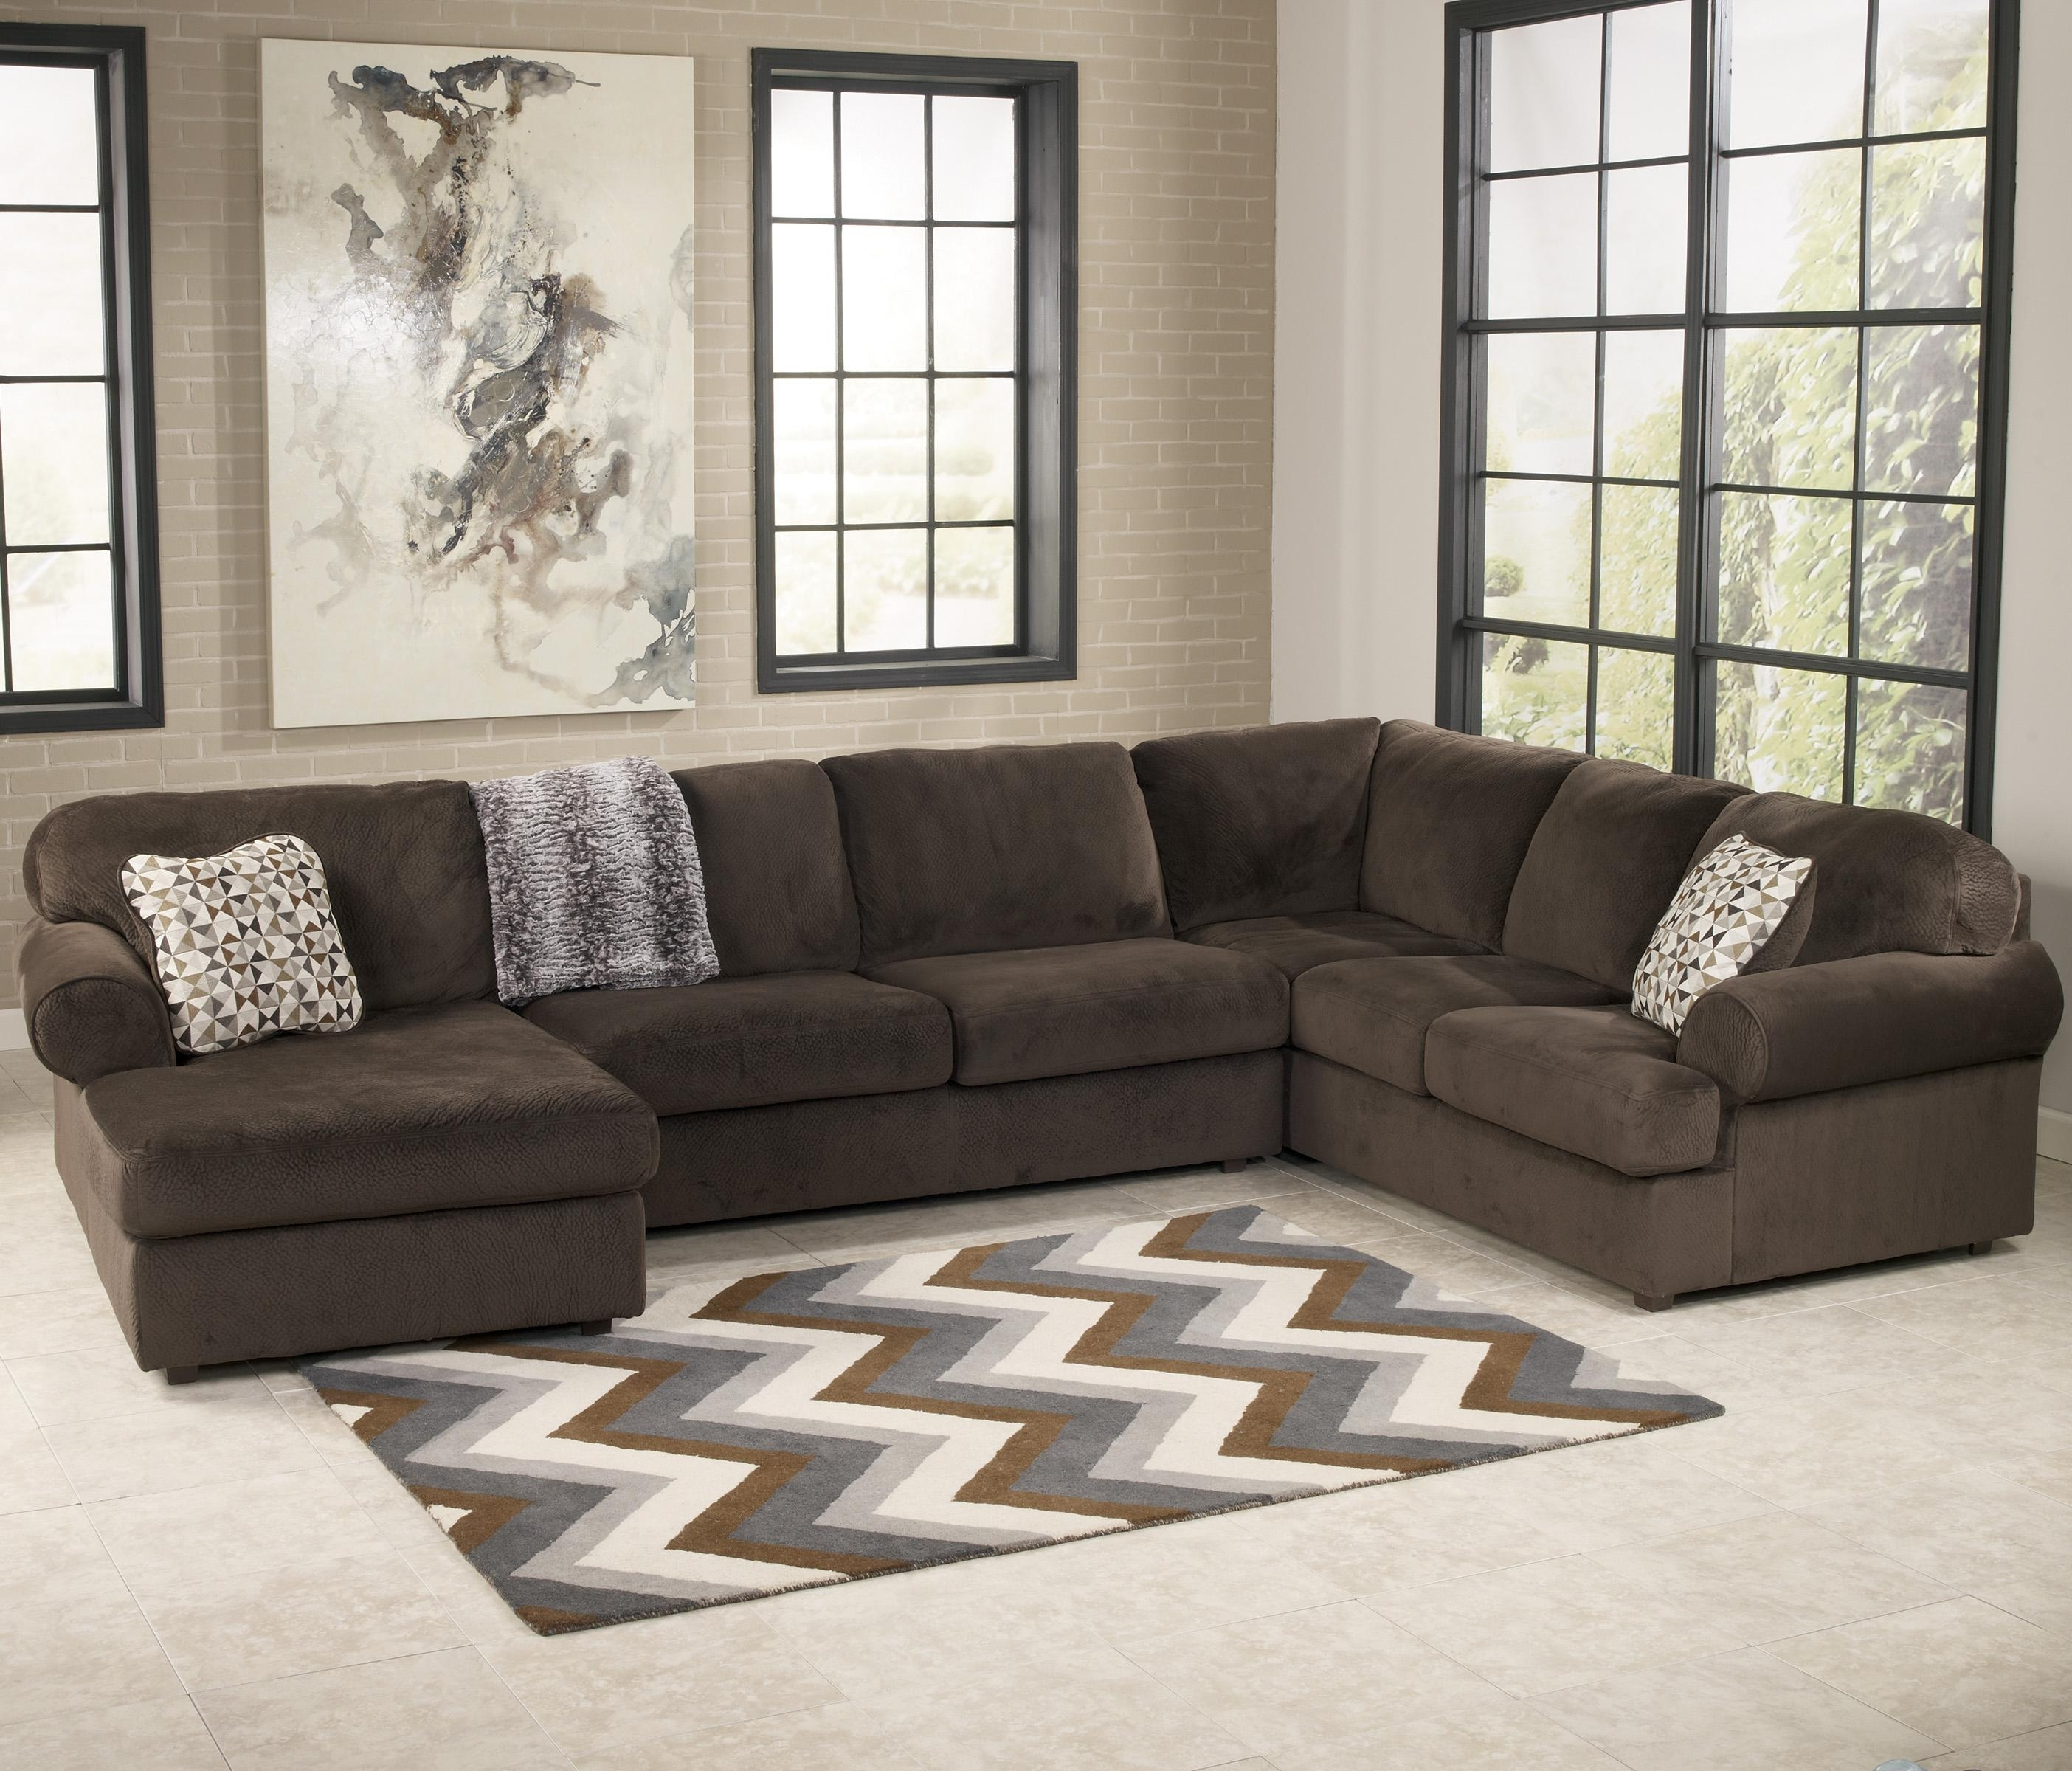 Signature Designashley Jessa Place – Chocolate Casual Sectional With Regard To Chocolate Sectional Sofas (Image 8 of 10)